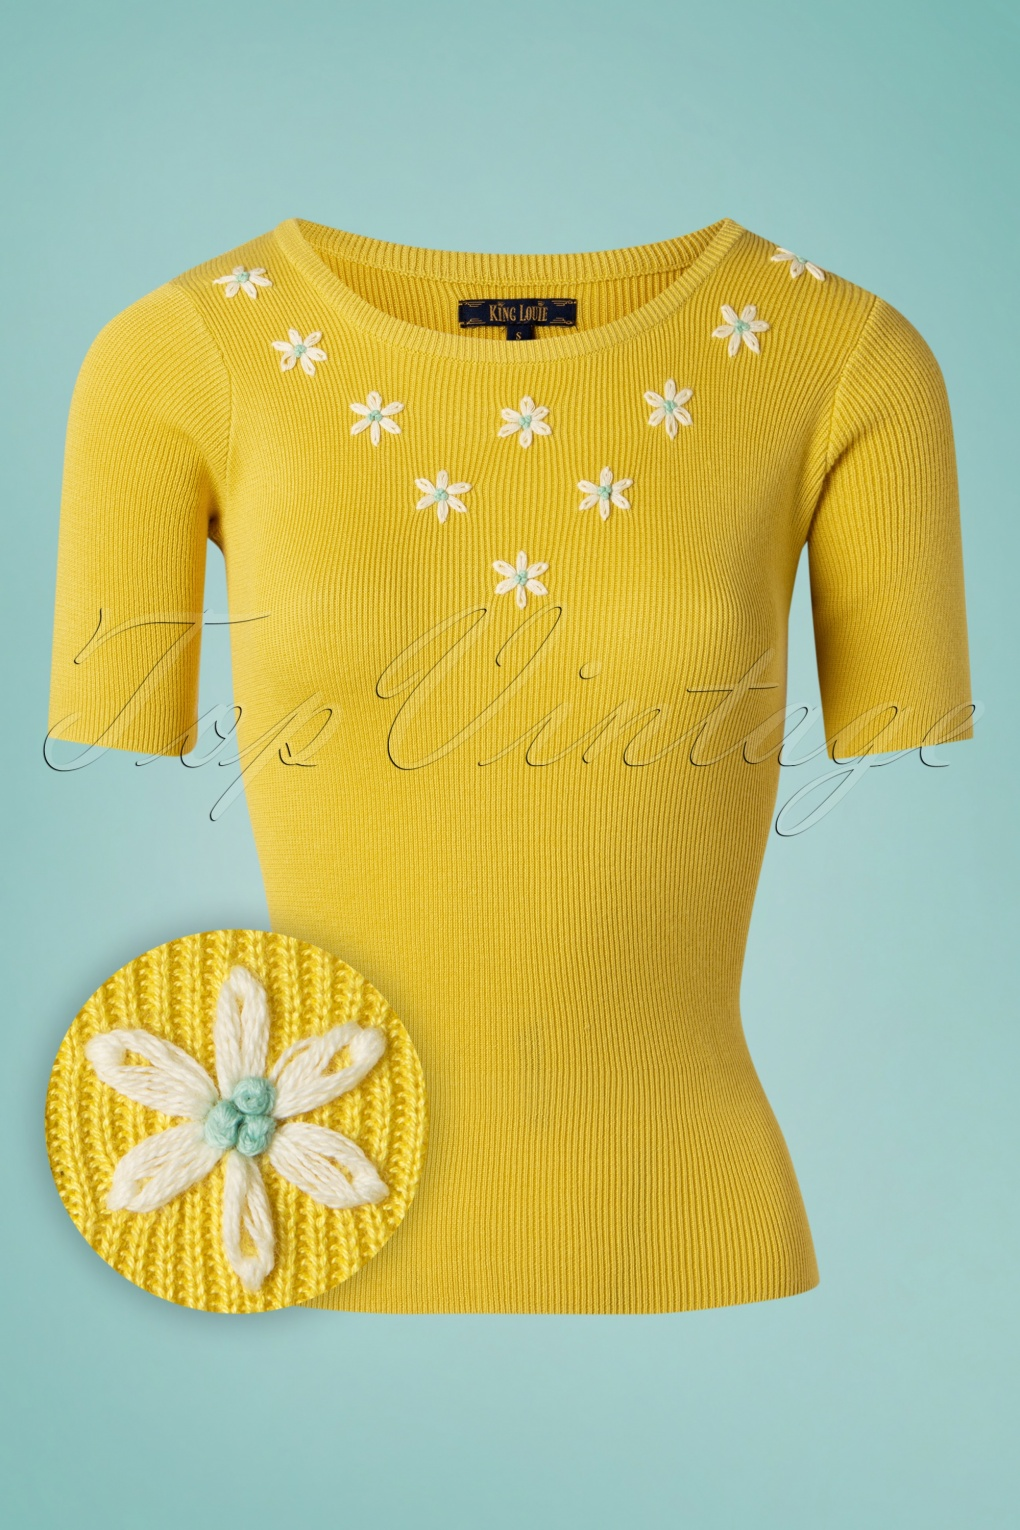 70s Outfits – 70s Style Ideas for Women 70s Lexi Flower Power Top in Sunny Yellow £61.47 AT vintagedancer.com